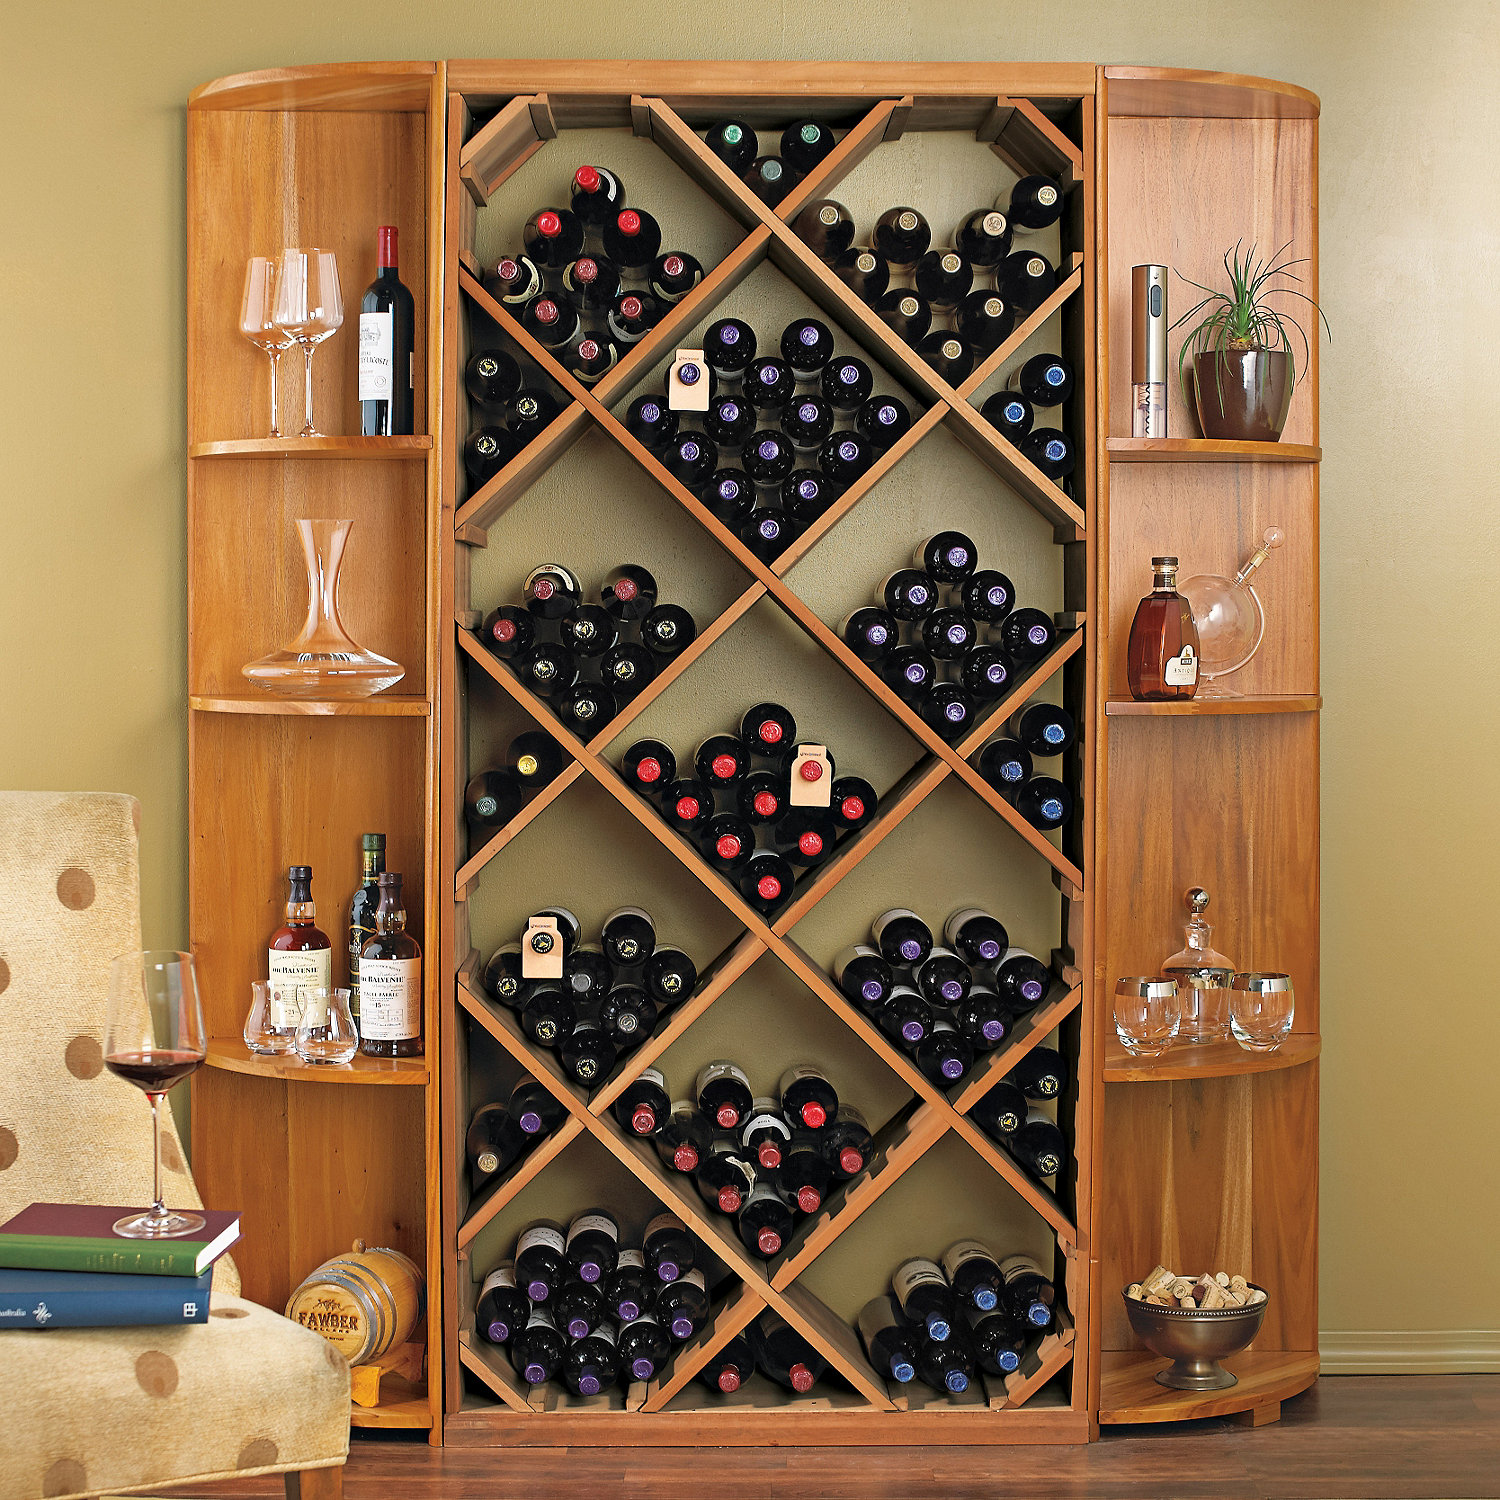 Design Diy Wine Rack nfinity diy diamond bin dual quarter round shelf wine rack set preparing zoom